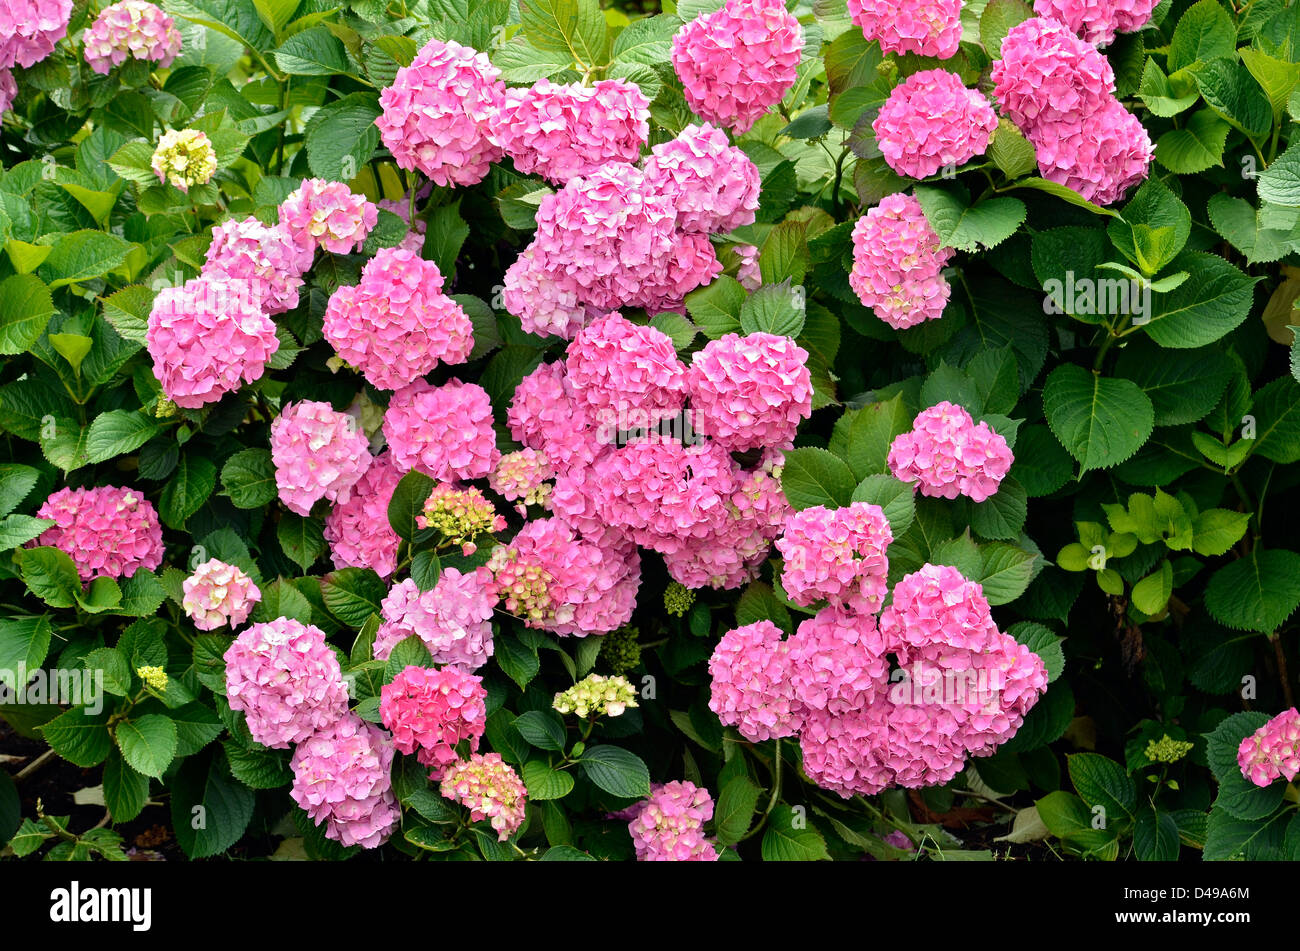 Closeup of red Hydrangea macrophylla flowers (or hortensia) - Stock Image